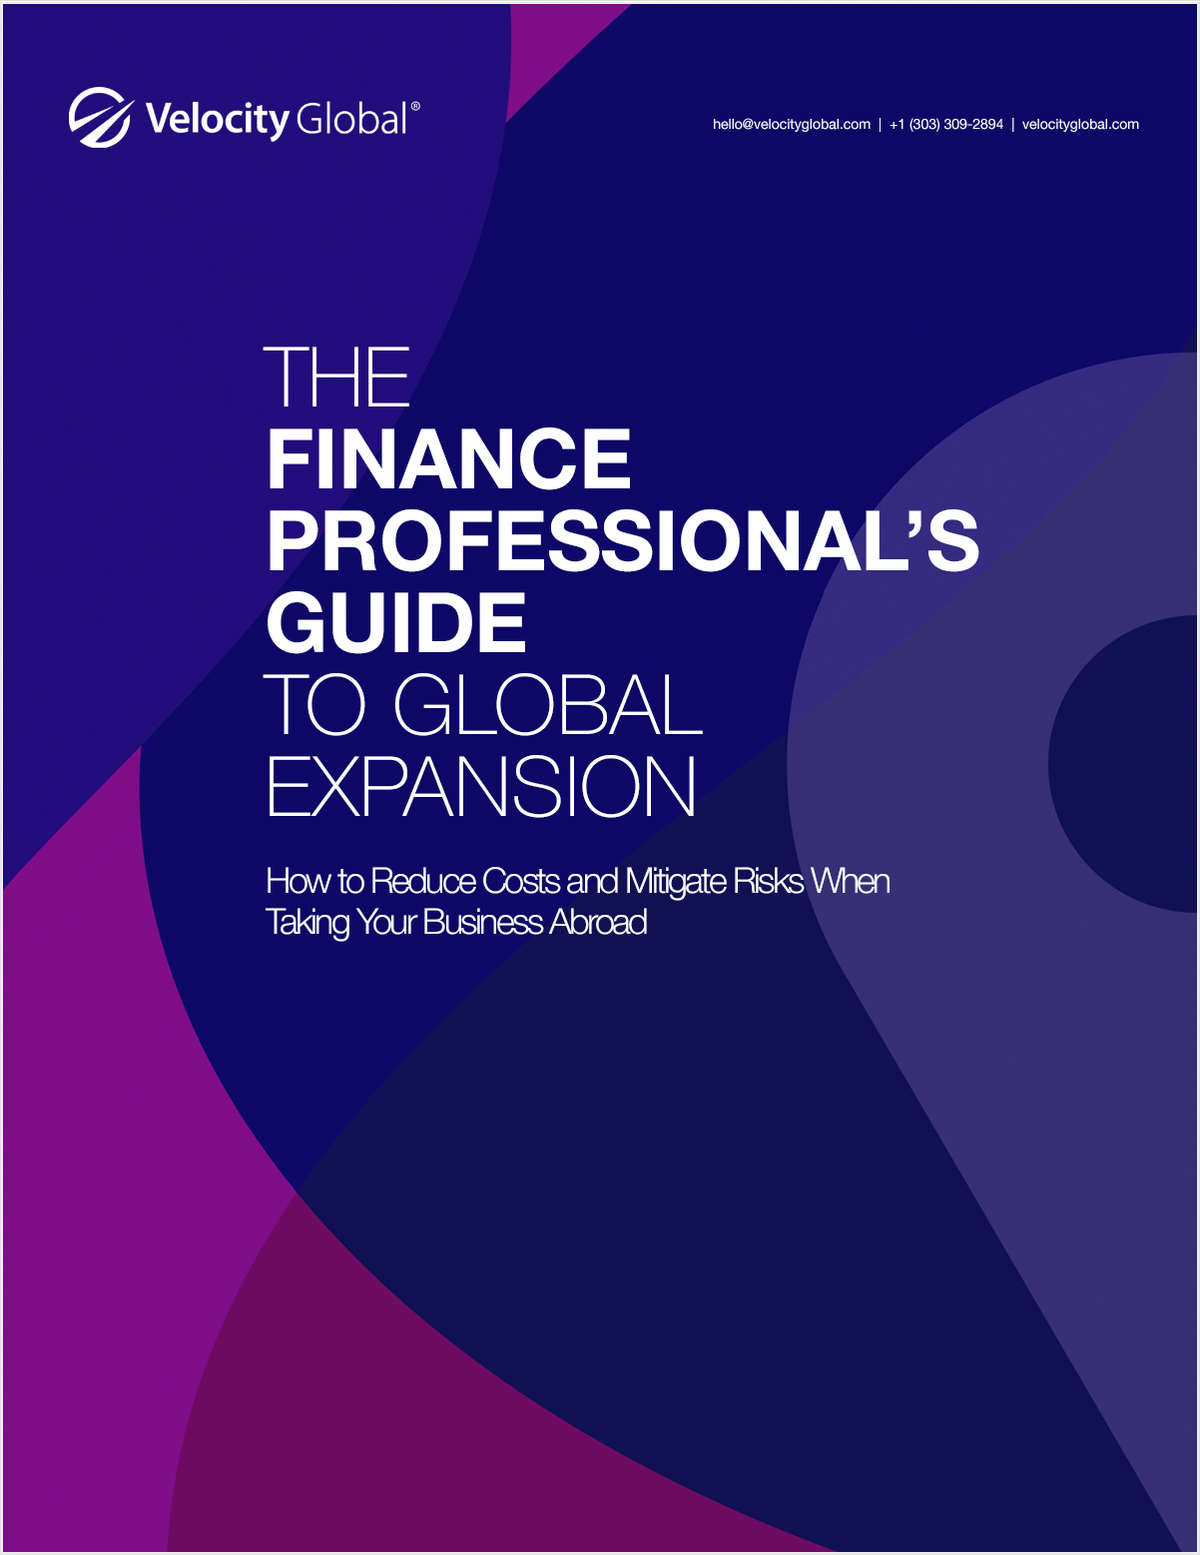 The Finance Professional's Guide to Global Expansion